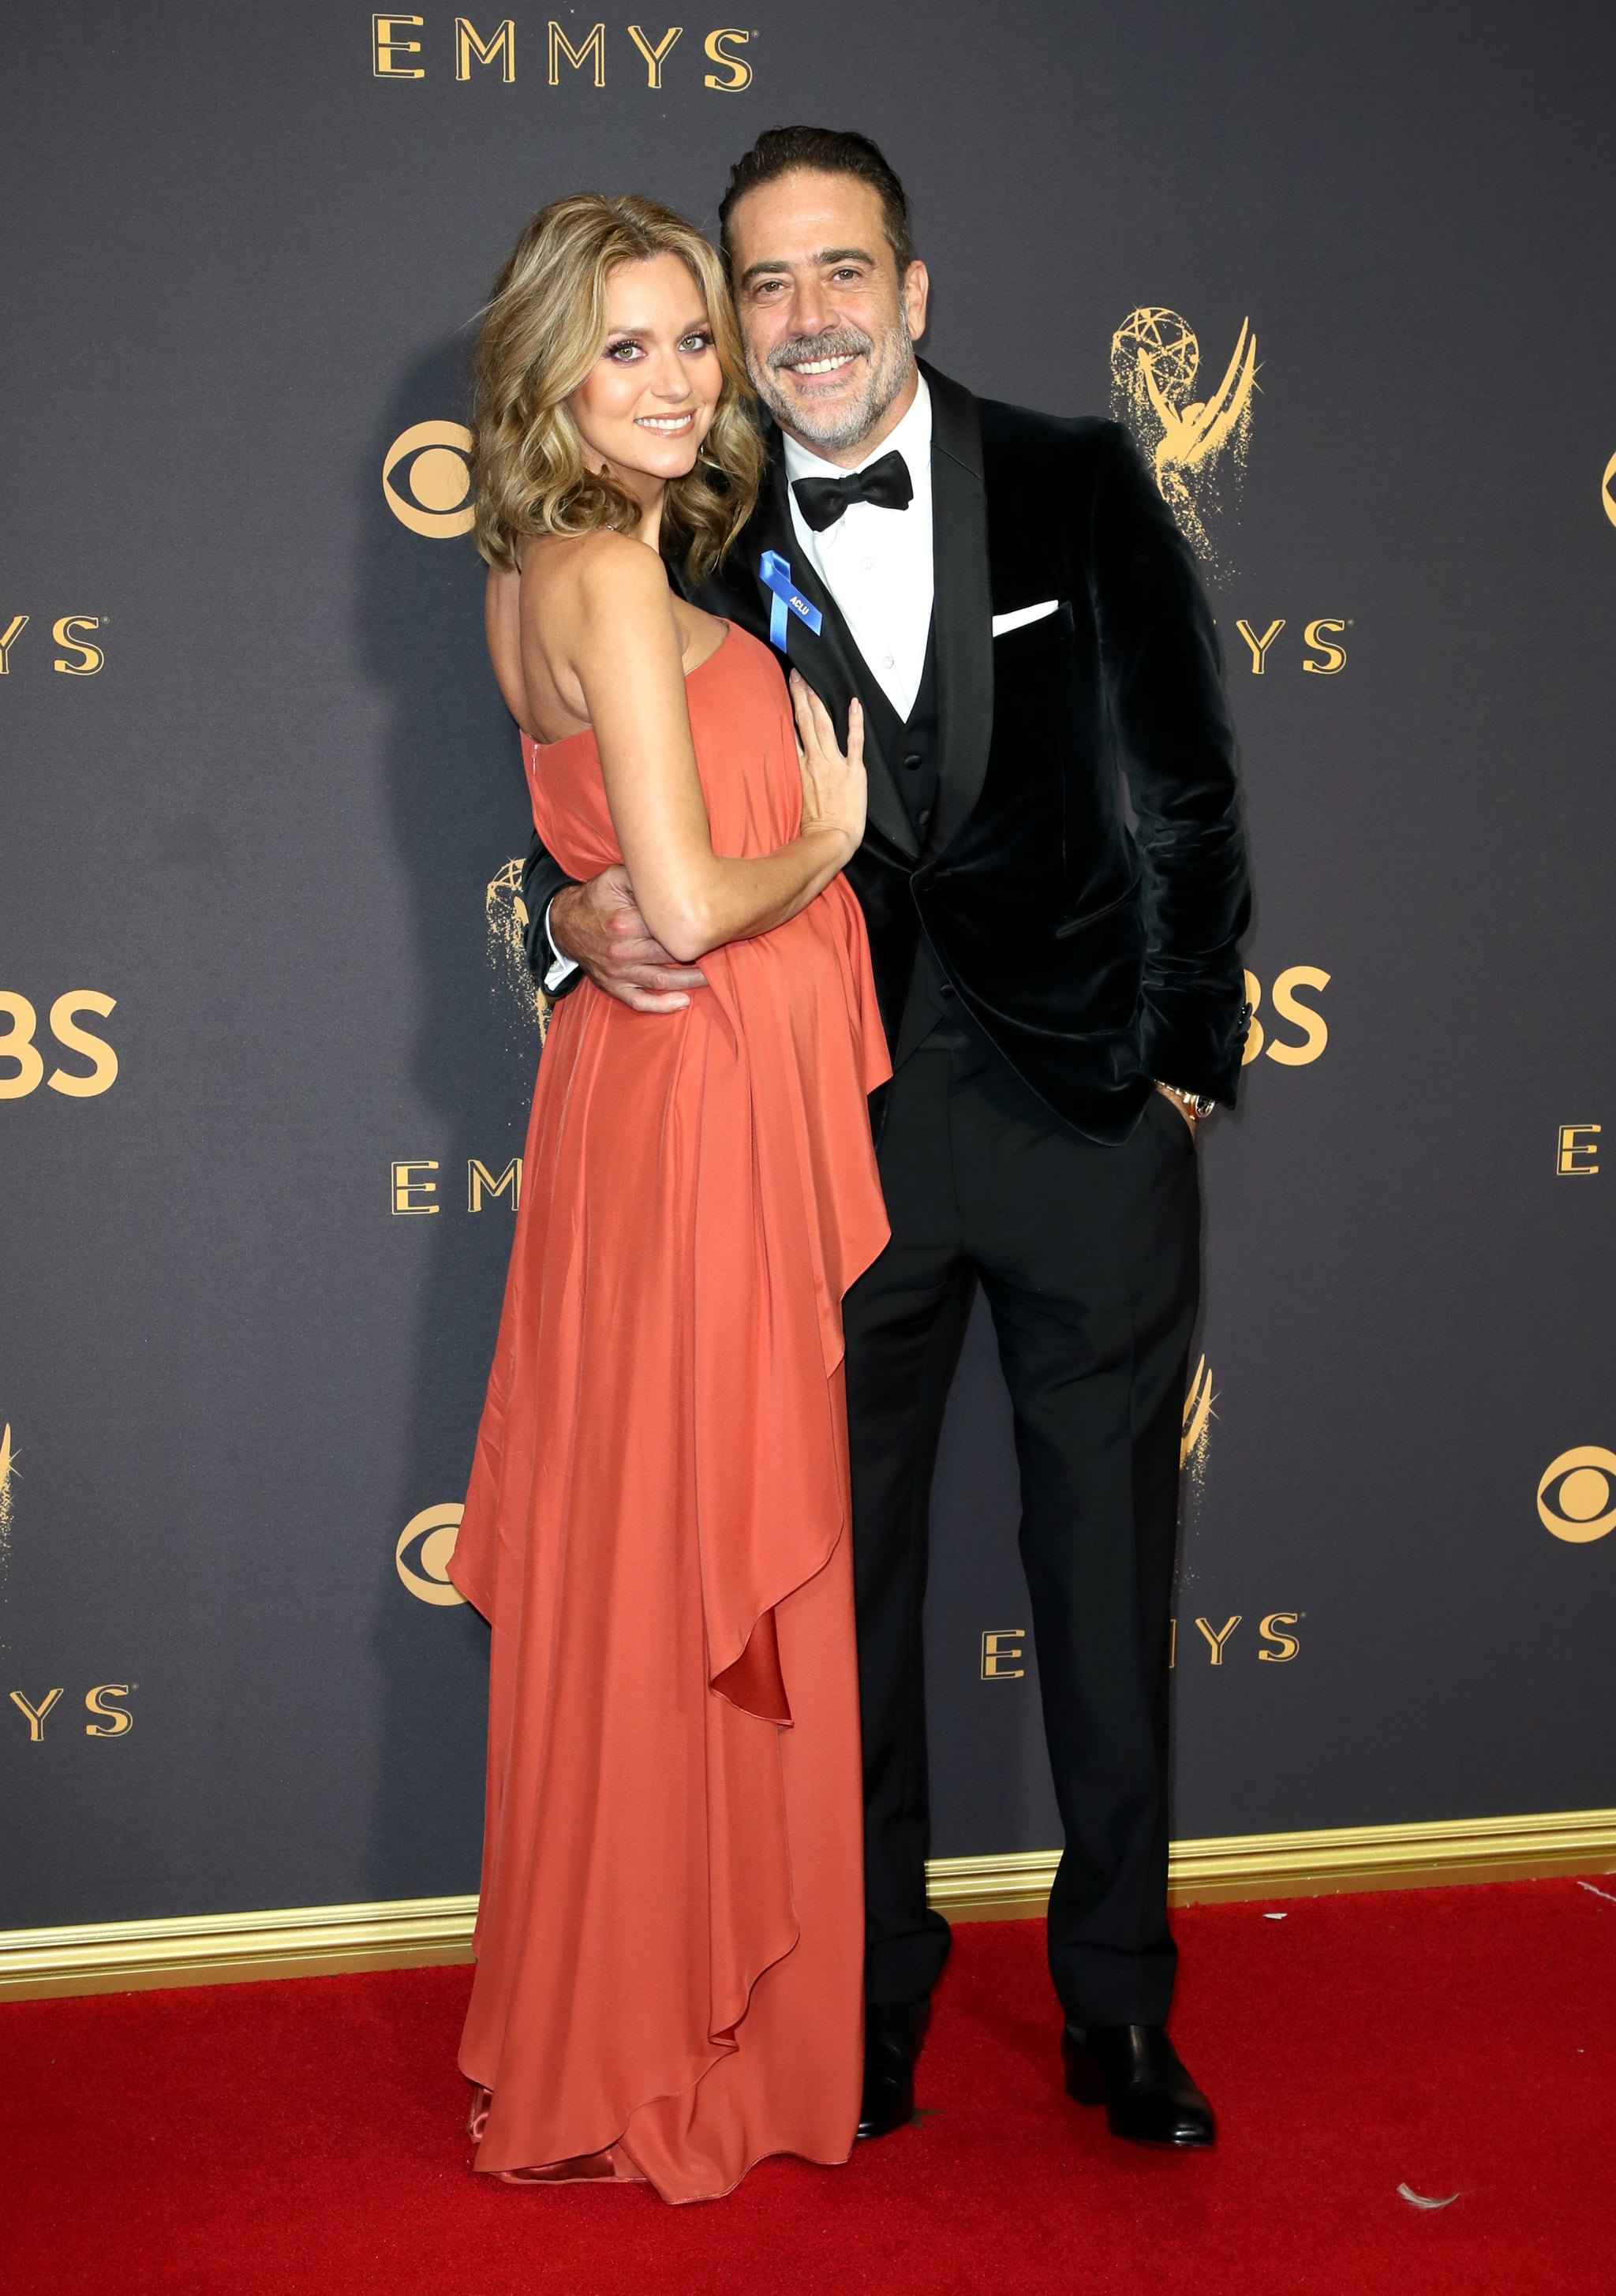 LOS ANGELES, CA - SEPTEMBER 17:  Actors Hilarie Burton (L) and Jeffrey Dean Morgan attend the 69th Annual Primetime Emmy Awards - Arrivals at Microsoft Theater on September 17, 2017 in Los Angeles, California.  (Photo by David Livingston/Getty Images)